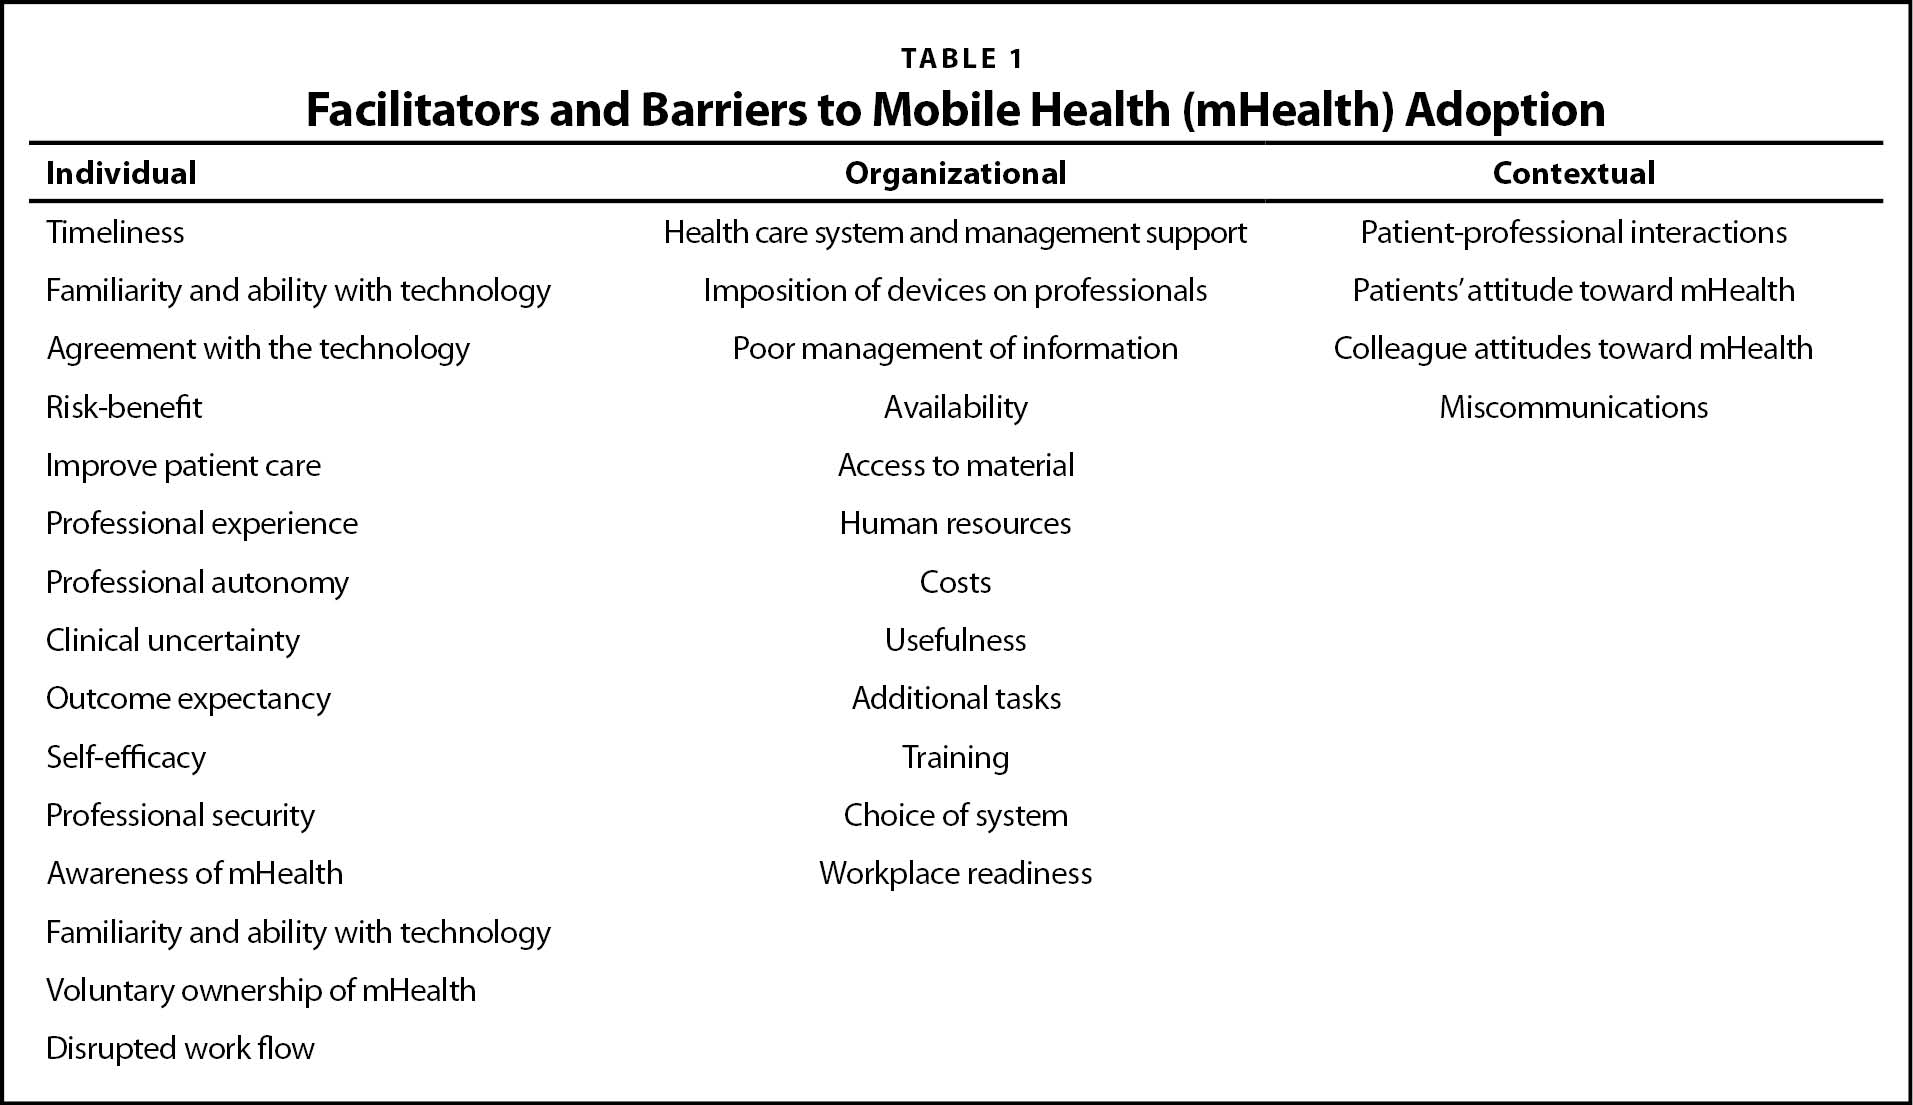 Facilitators and Barriers to Mobile Health (mHealth) Adoption